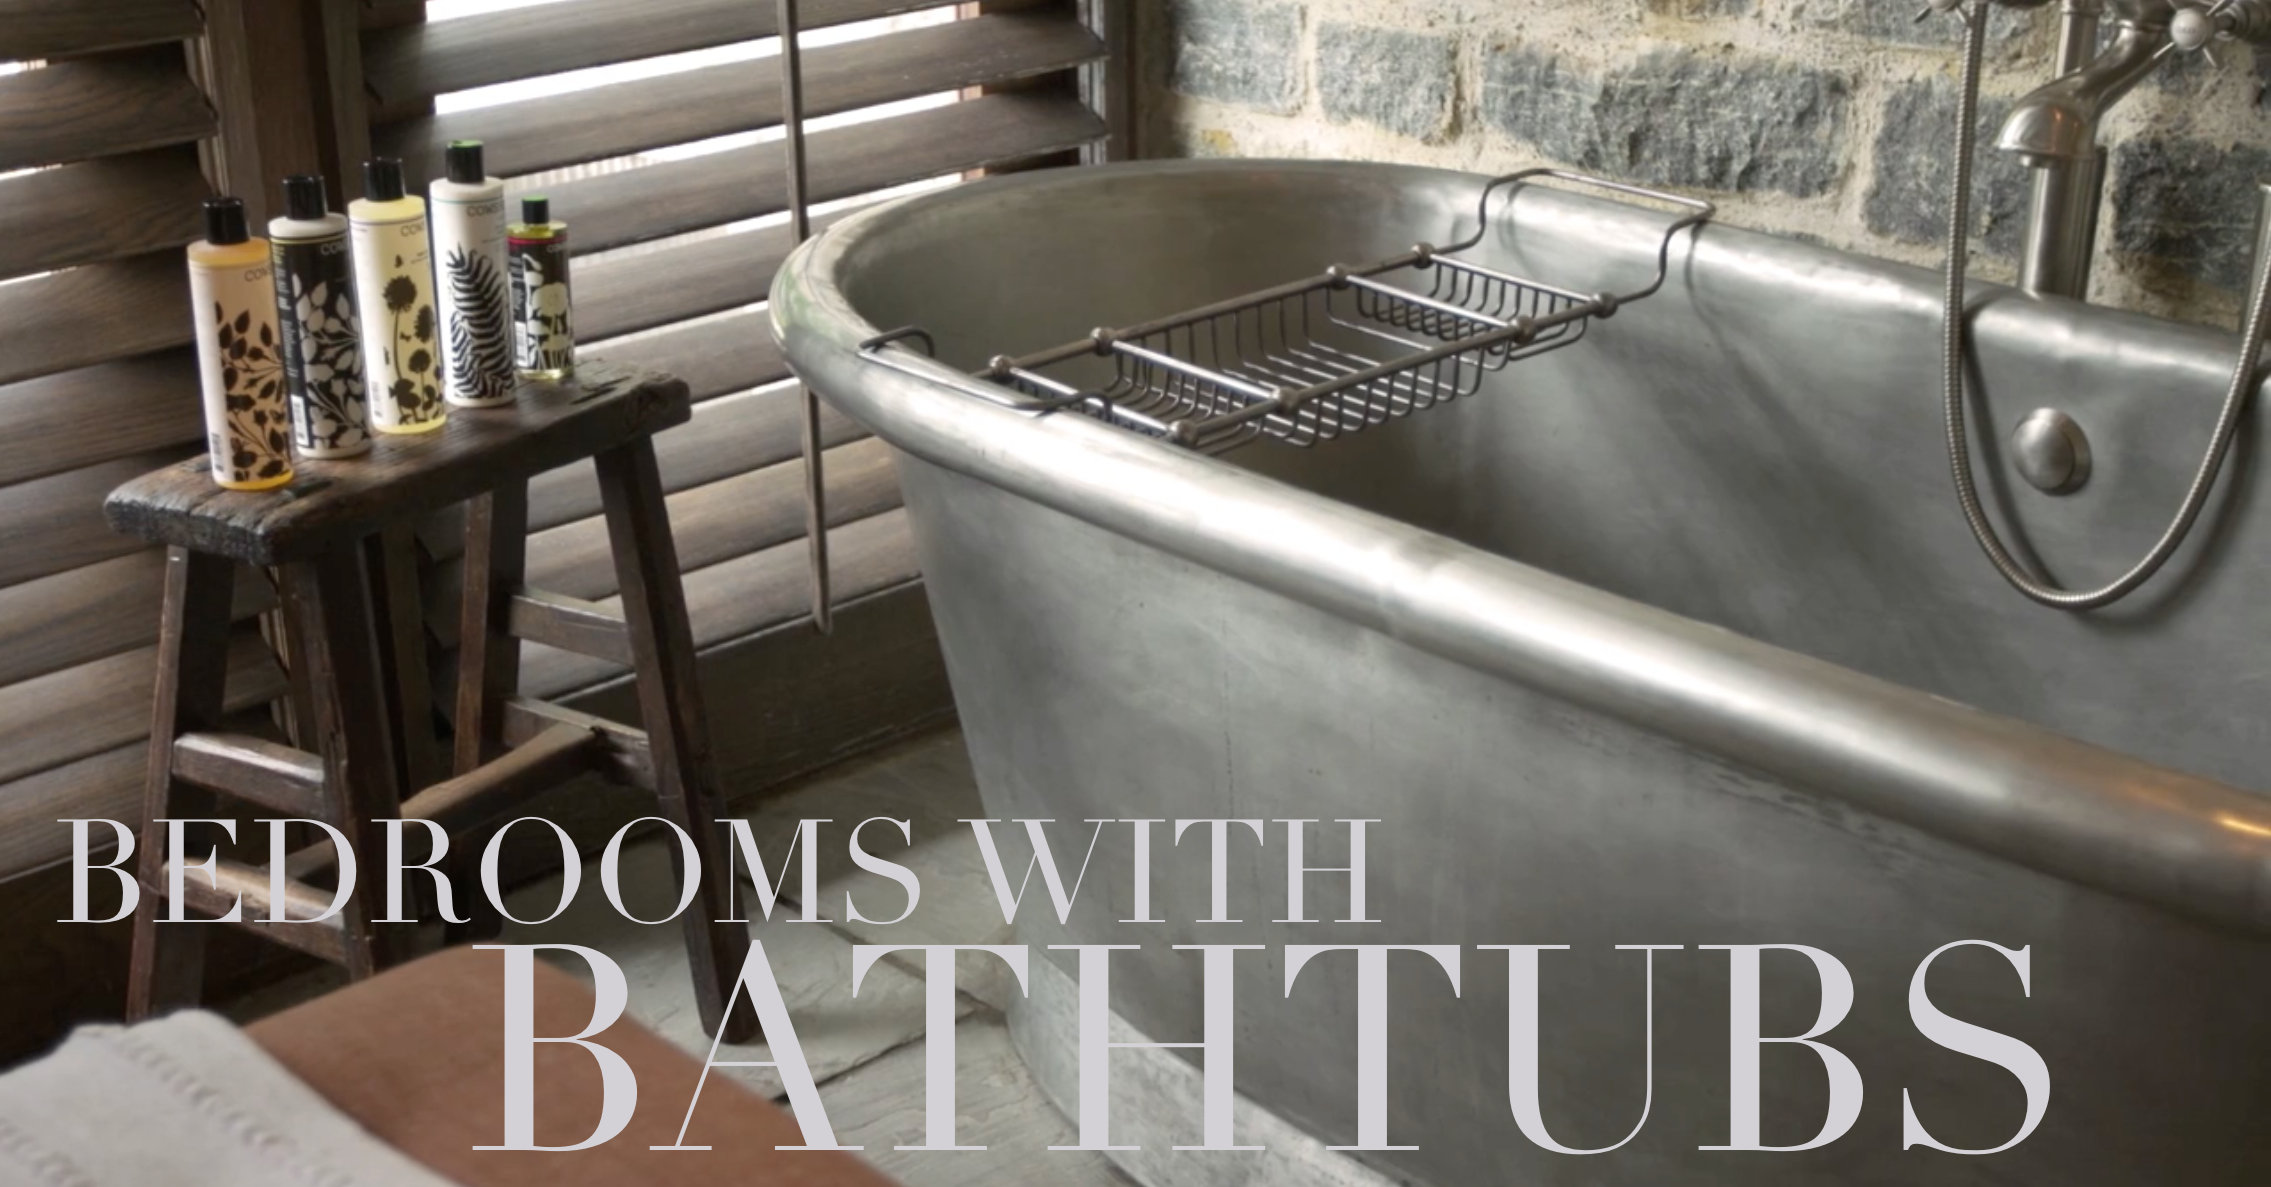 Bathtub Bedrooms